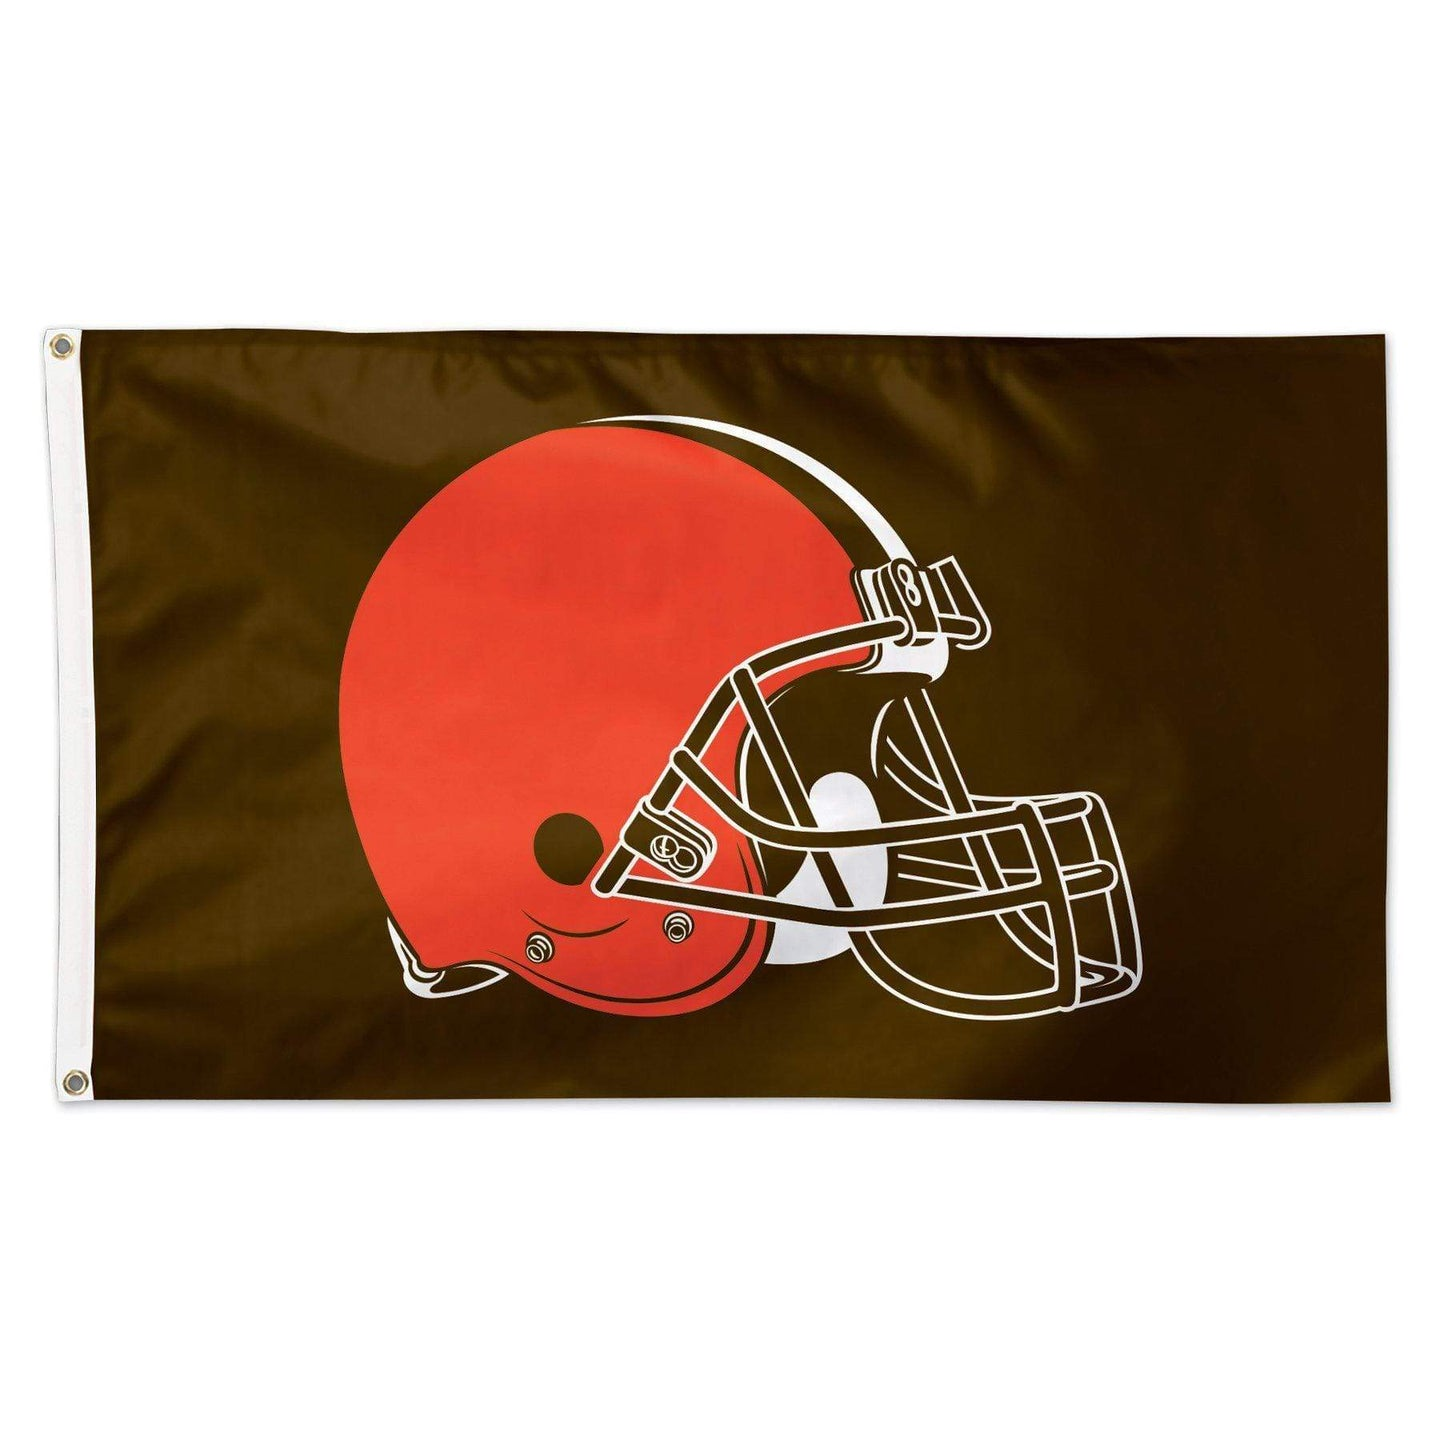 3' x 5' Cleveland Browns Flag - Conrads College Gifts